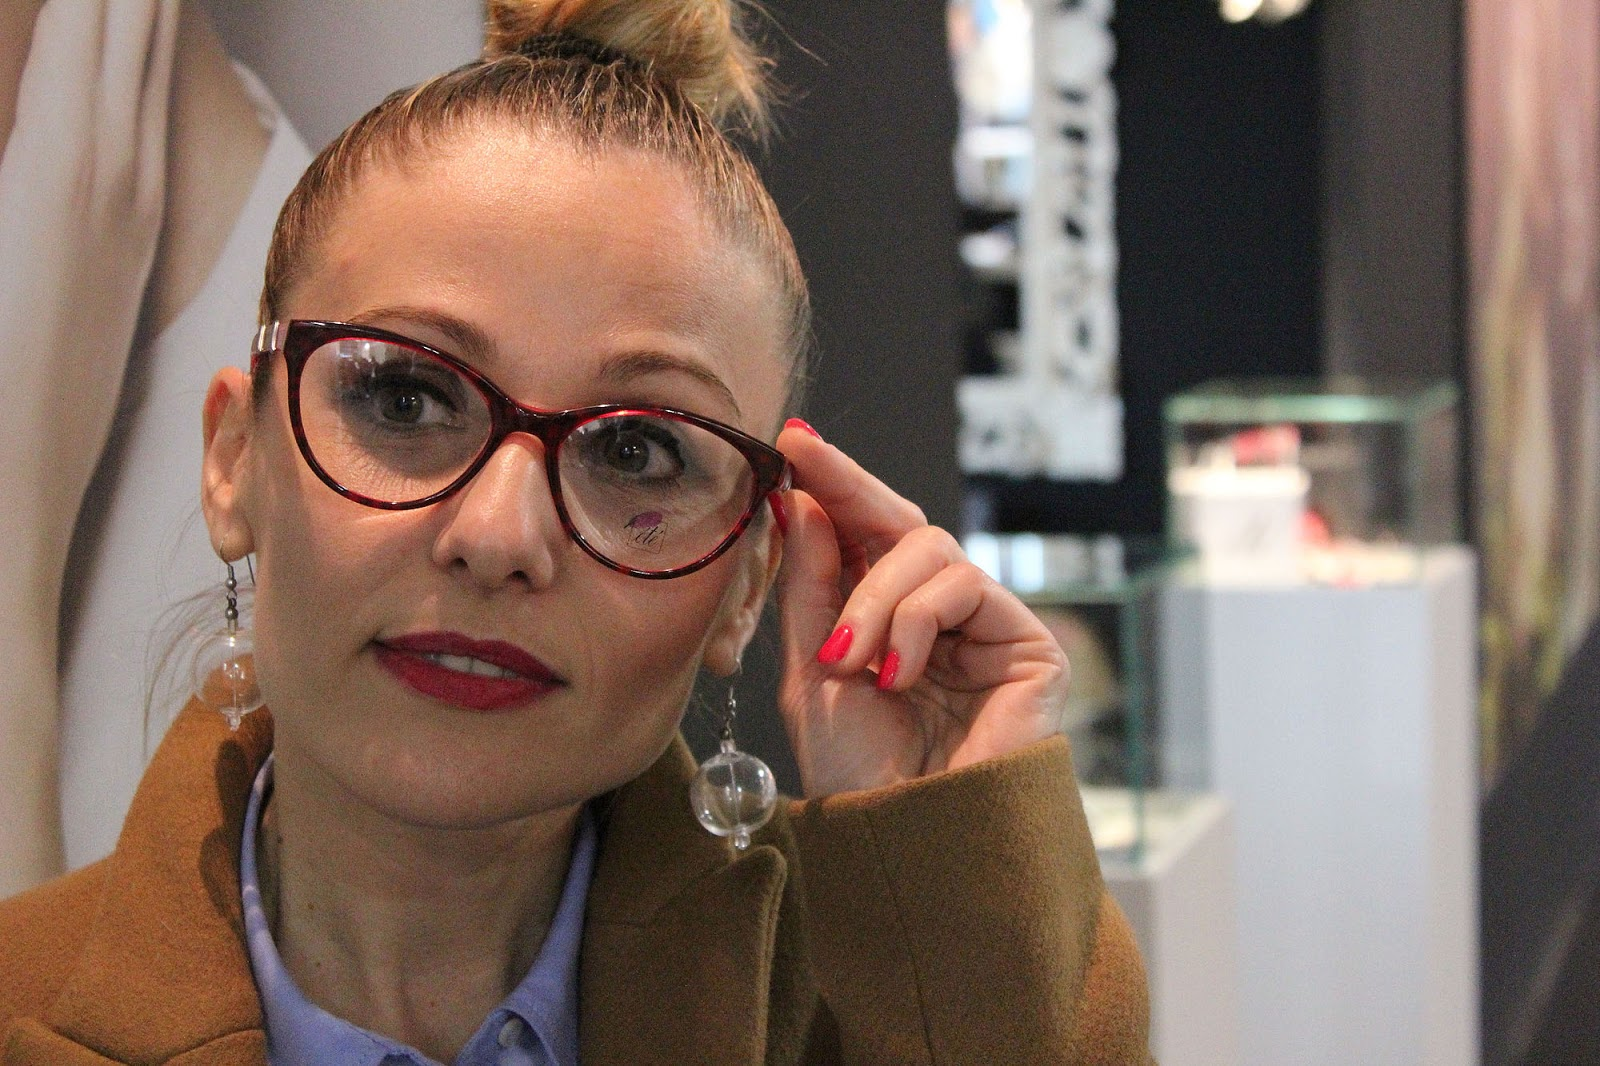 Eniwhere Fashion - Key Optical Europe - Été Lunettes